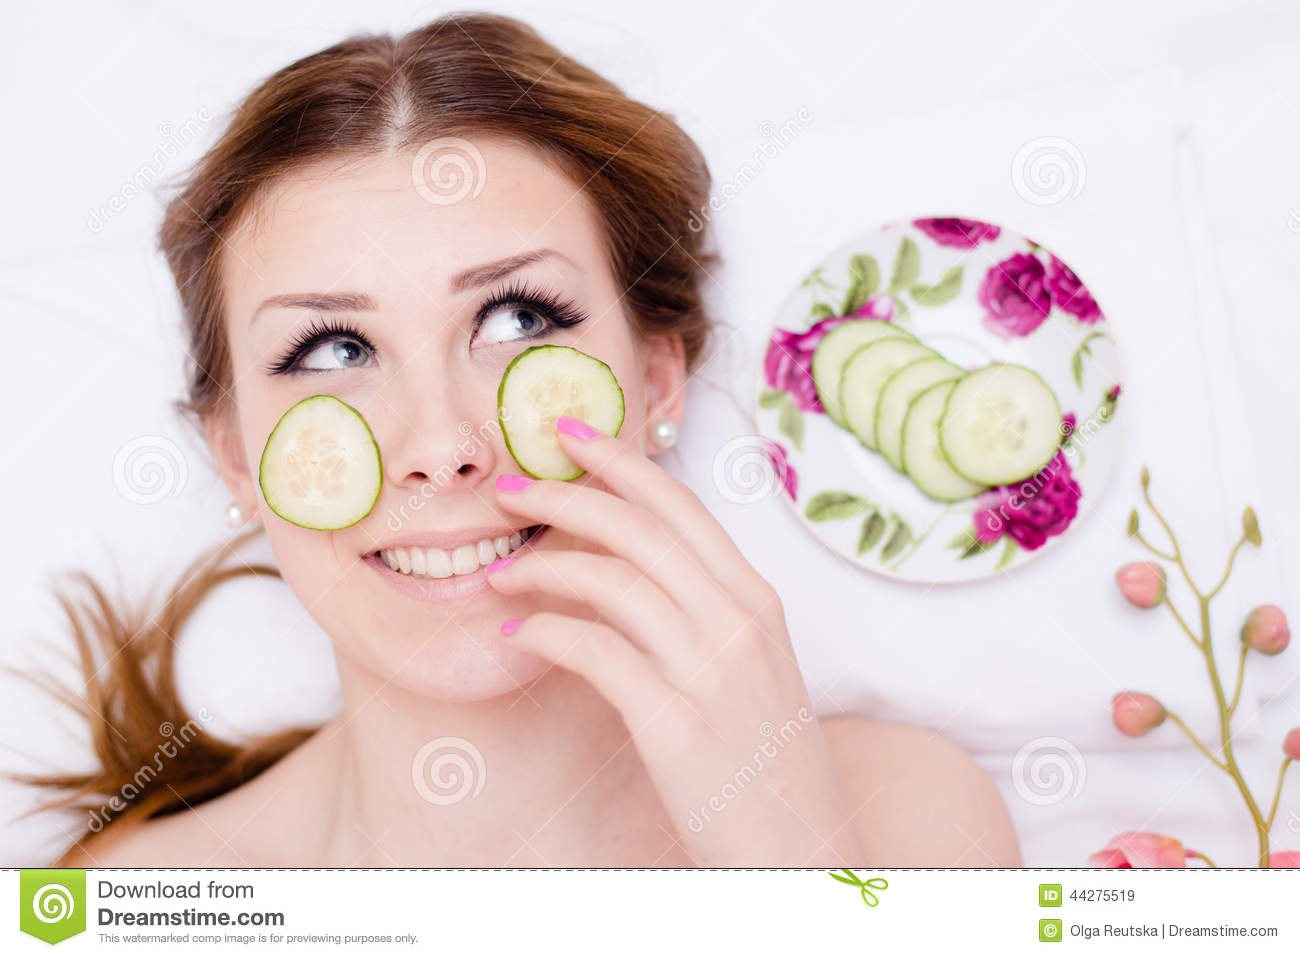 Organic green natural spa treatment: happy beautiful blond young lady having fun applying slices of cucumber to her face skin